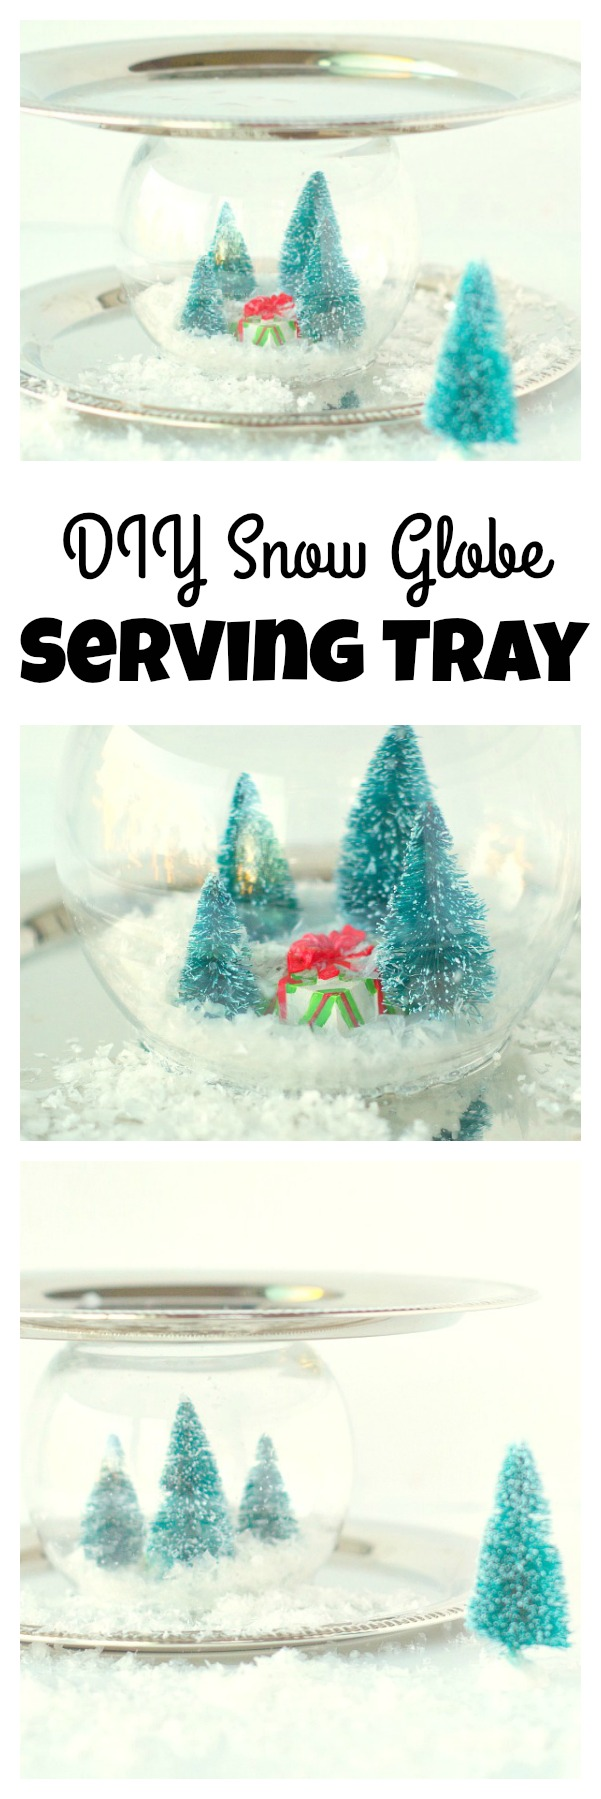 DIY Snow Globe Serving Tray